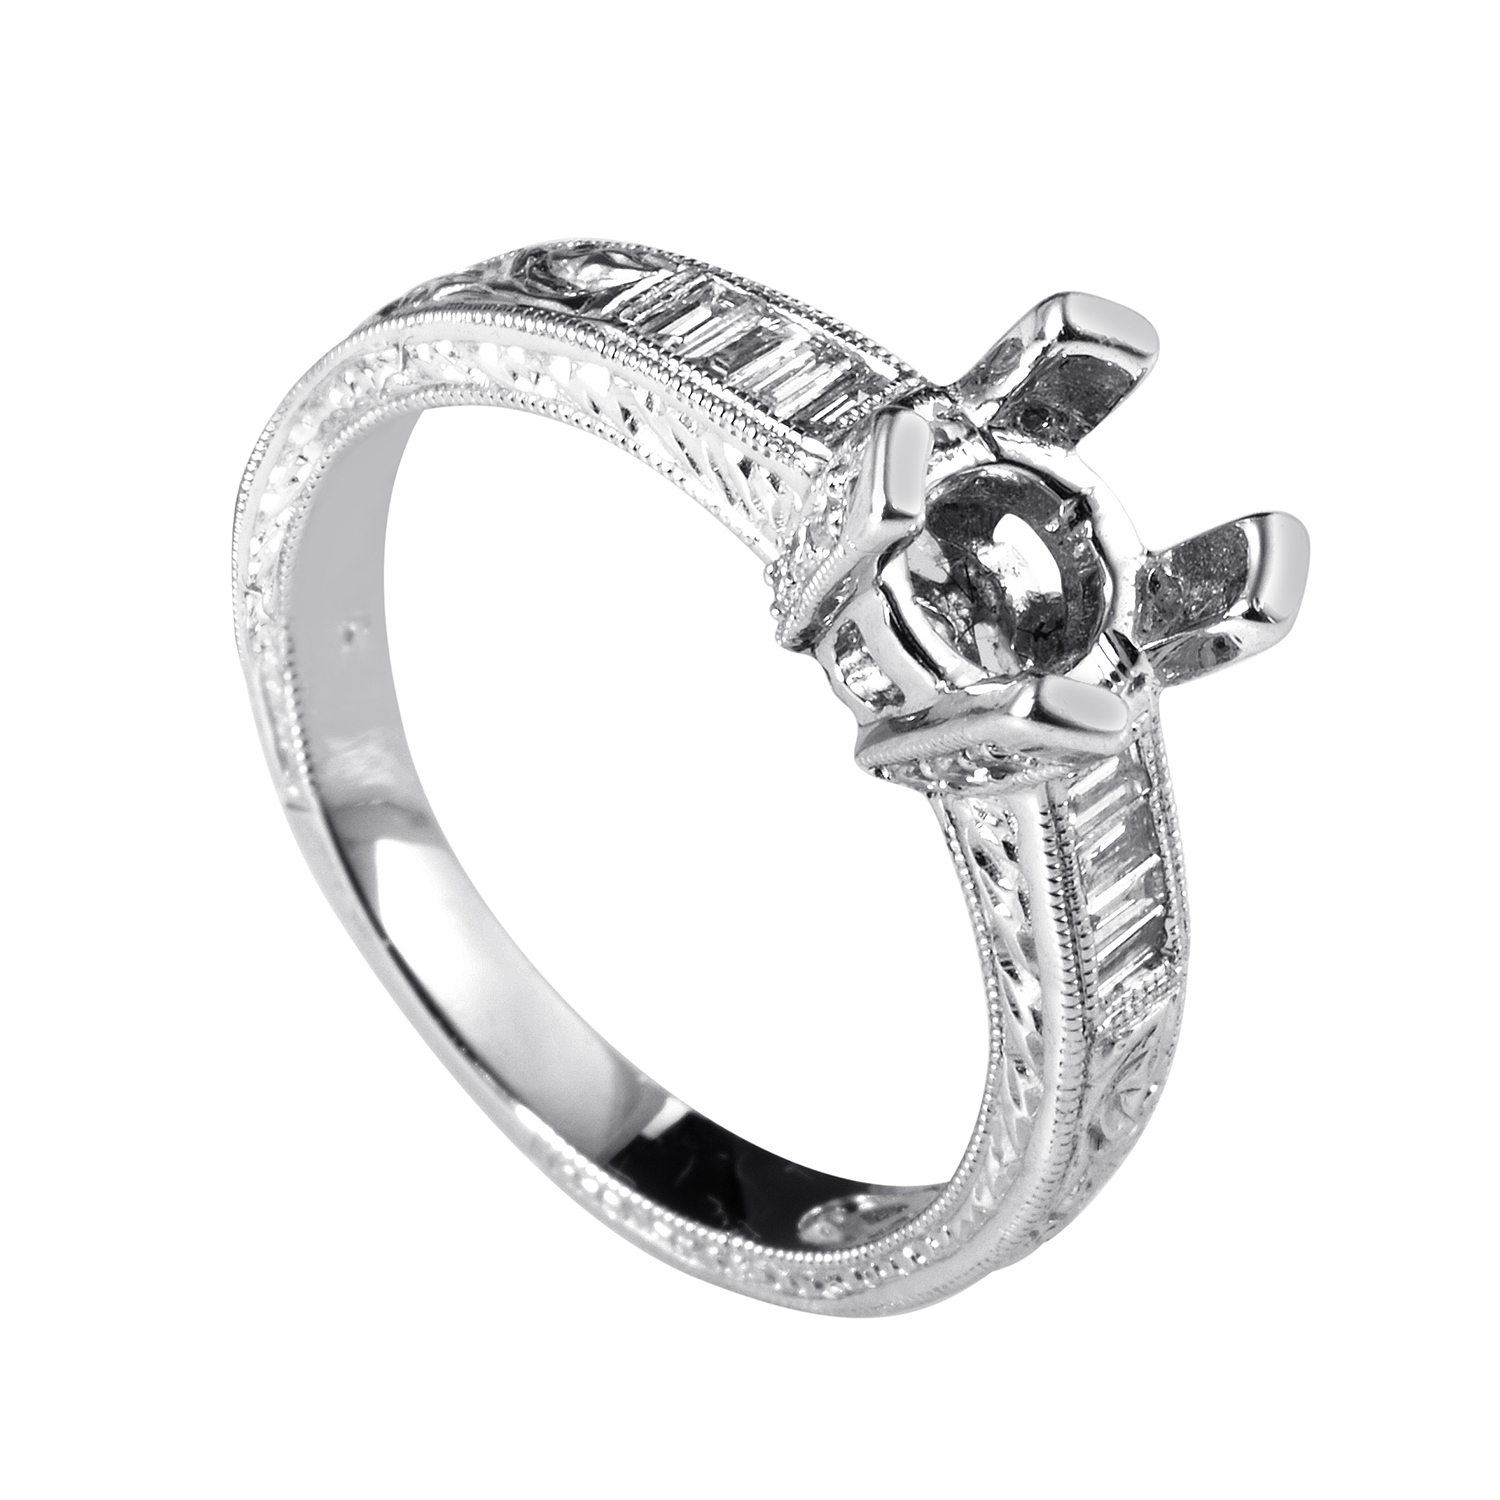 18K White Gold Diamond Engagement Ring Mounting EN8-031305W